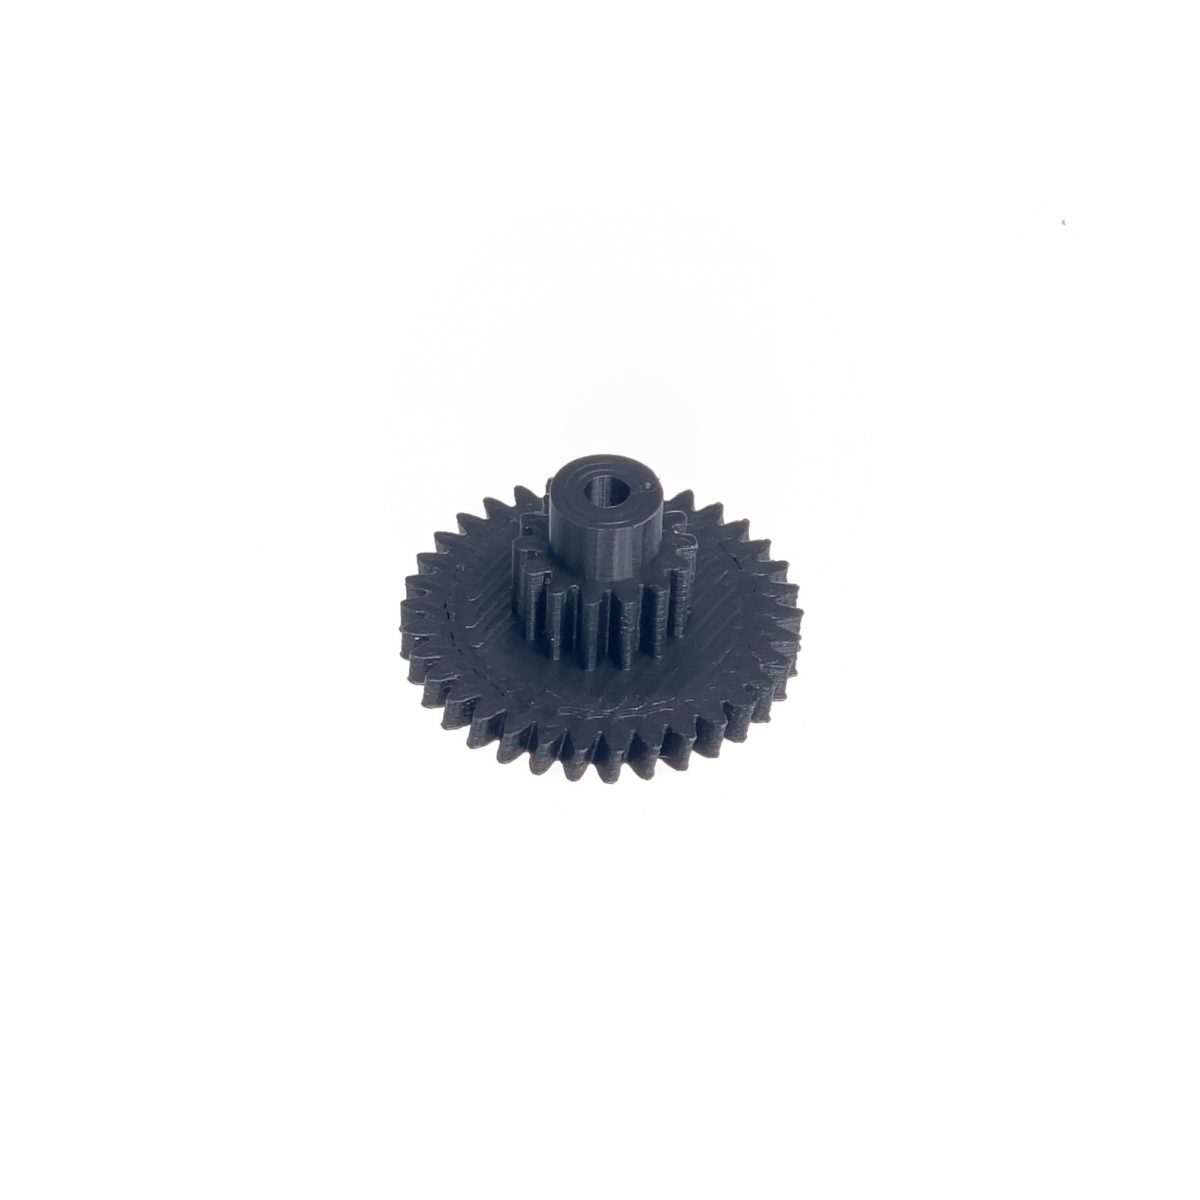 Tascam 112MKII, 112RMK2 Gear C Replacement